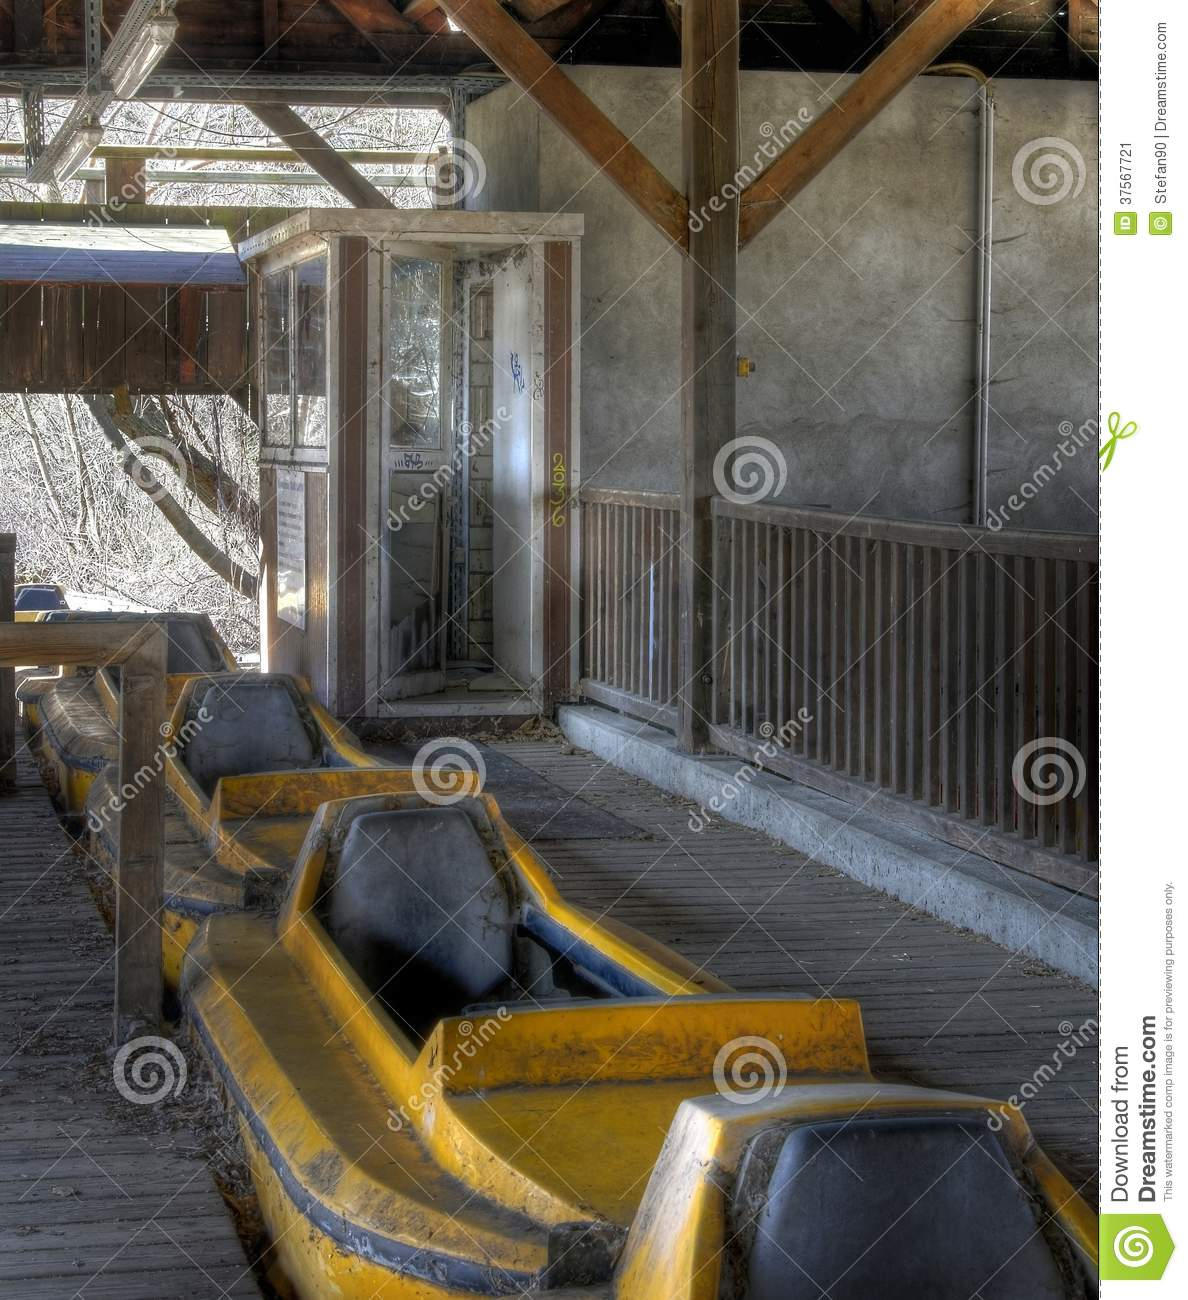 Abandoned Amusement Park Stock Image. Image Of Lost, Blue